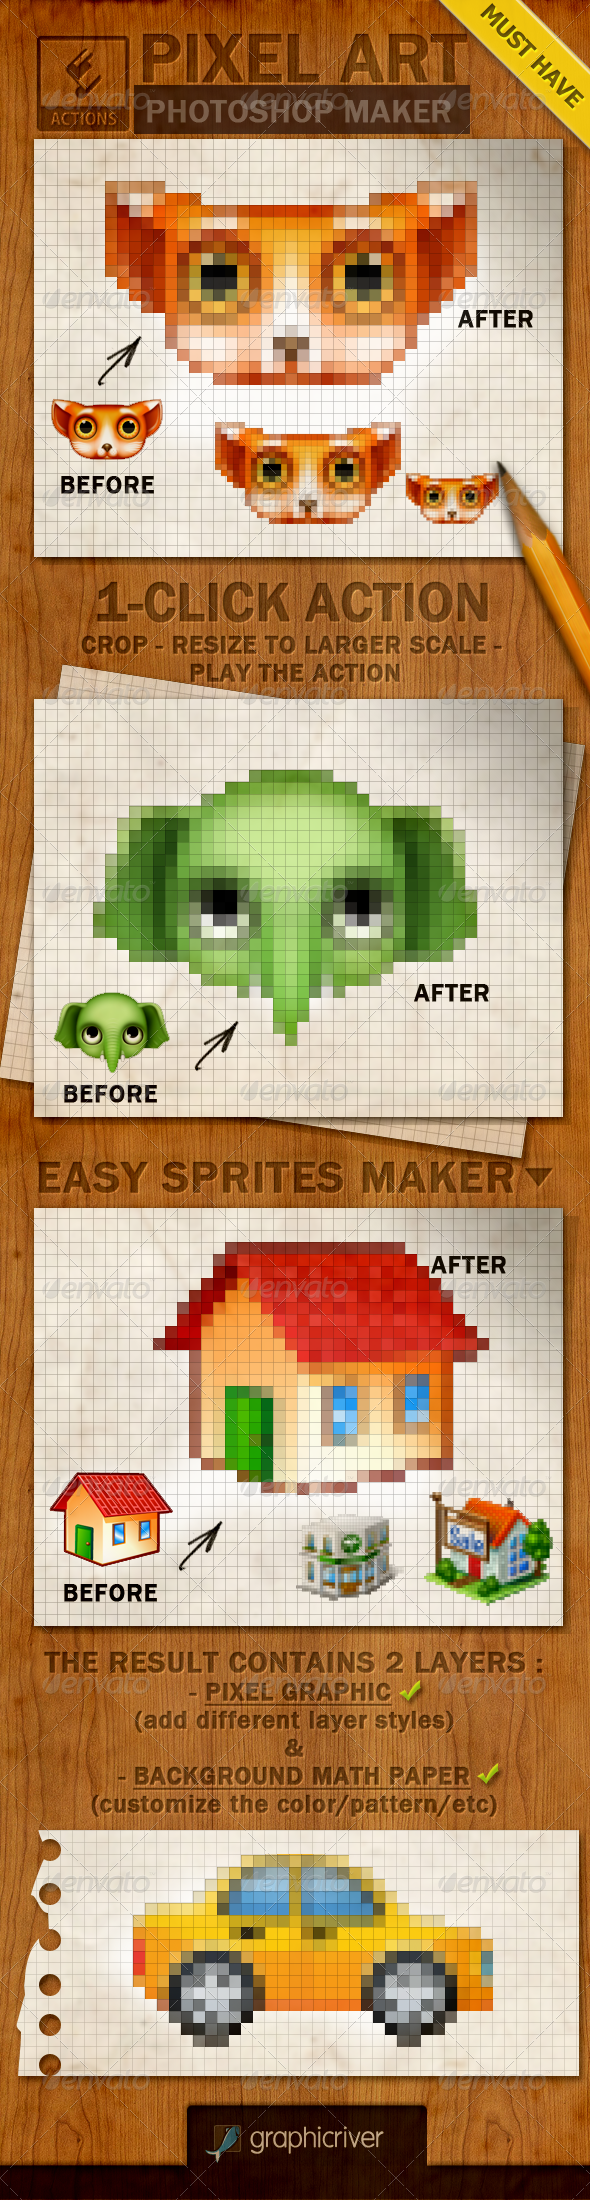 GraphicRiver Pixel Art Creator Photoshop Action 4069527